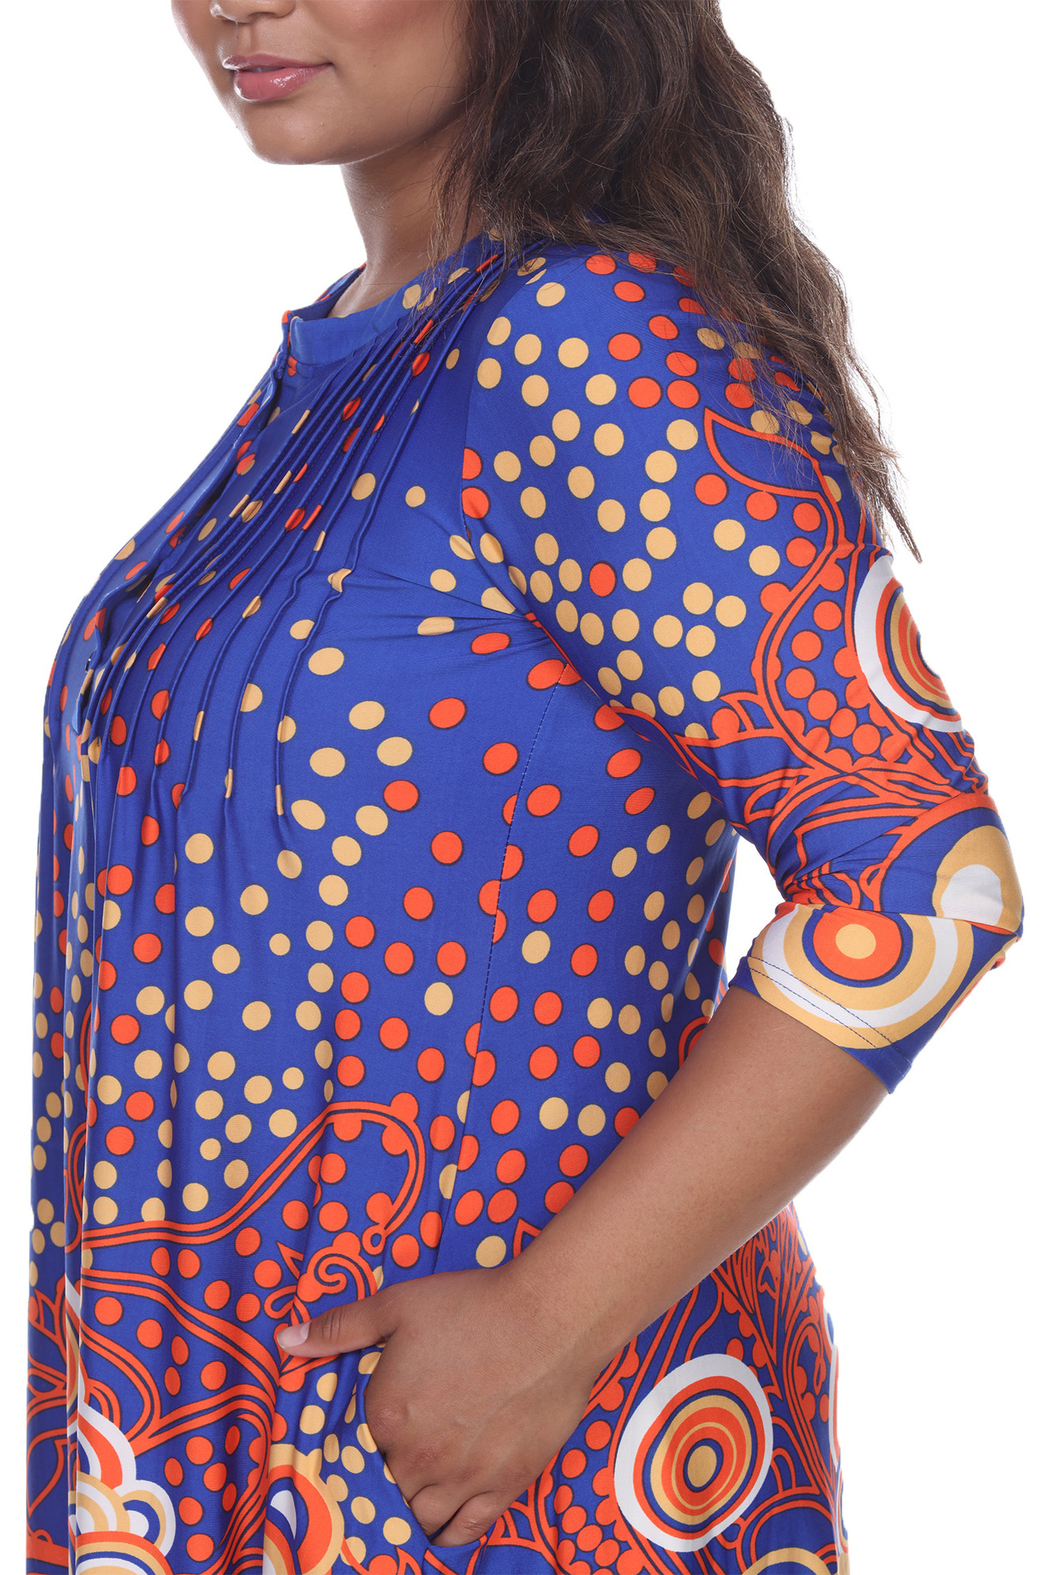 WhiteMark White Mark's Dotty Pleated Front Tunic Top - Front Full Image